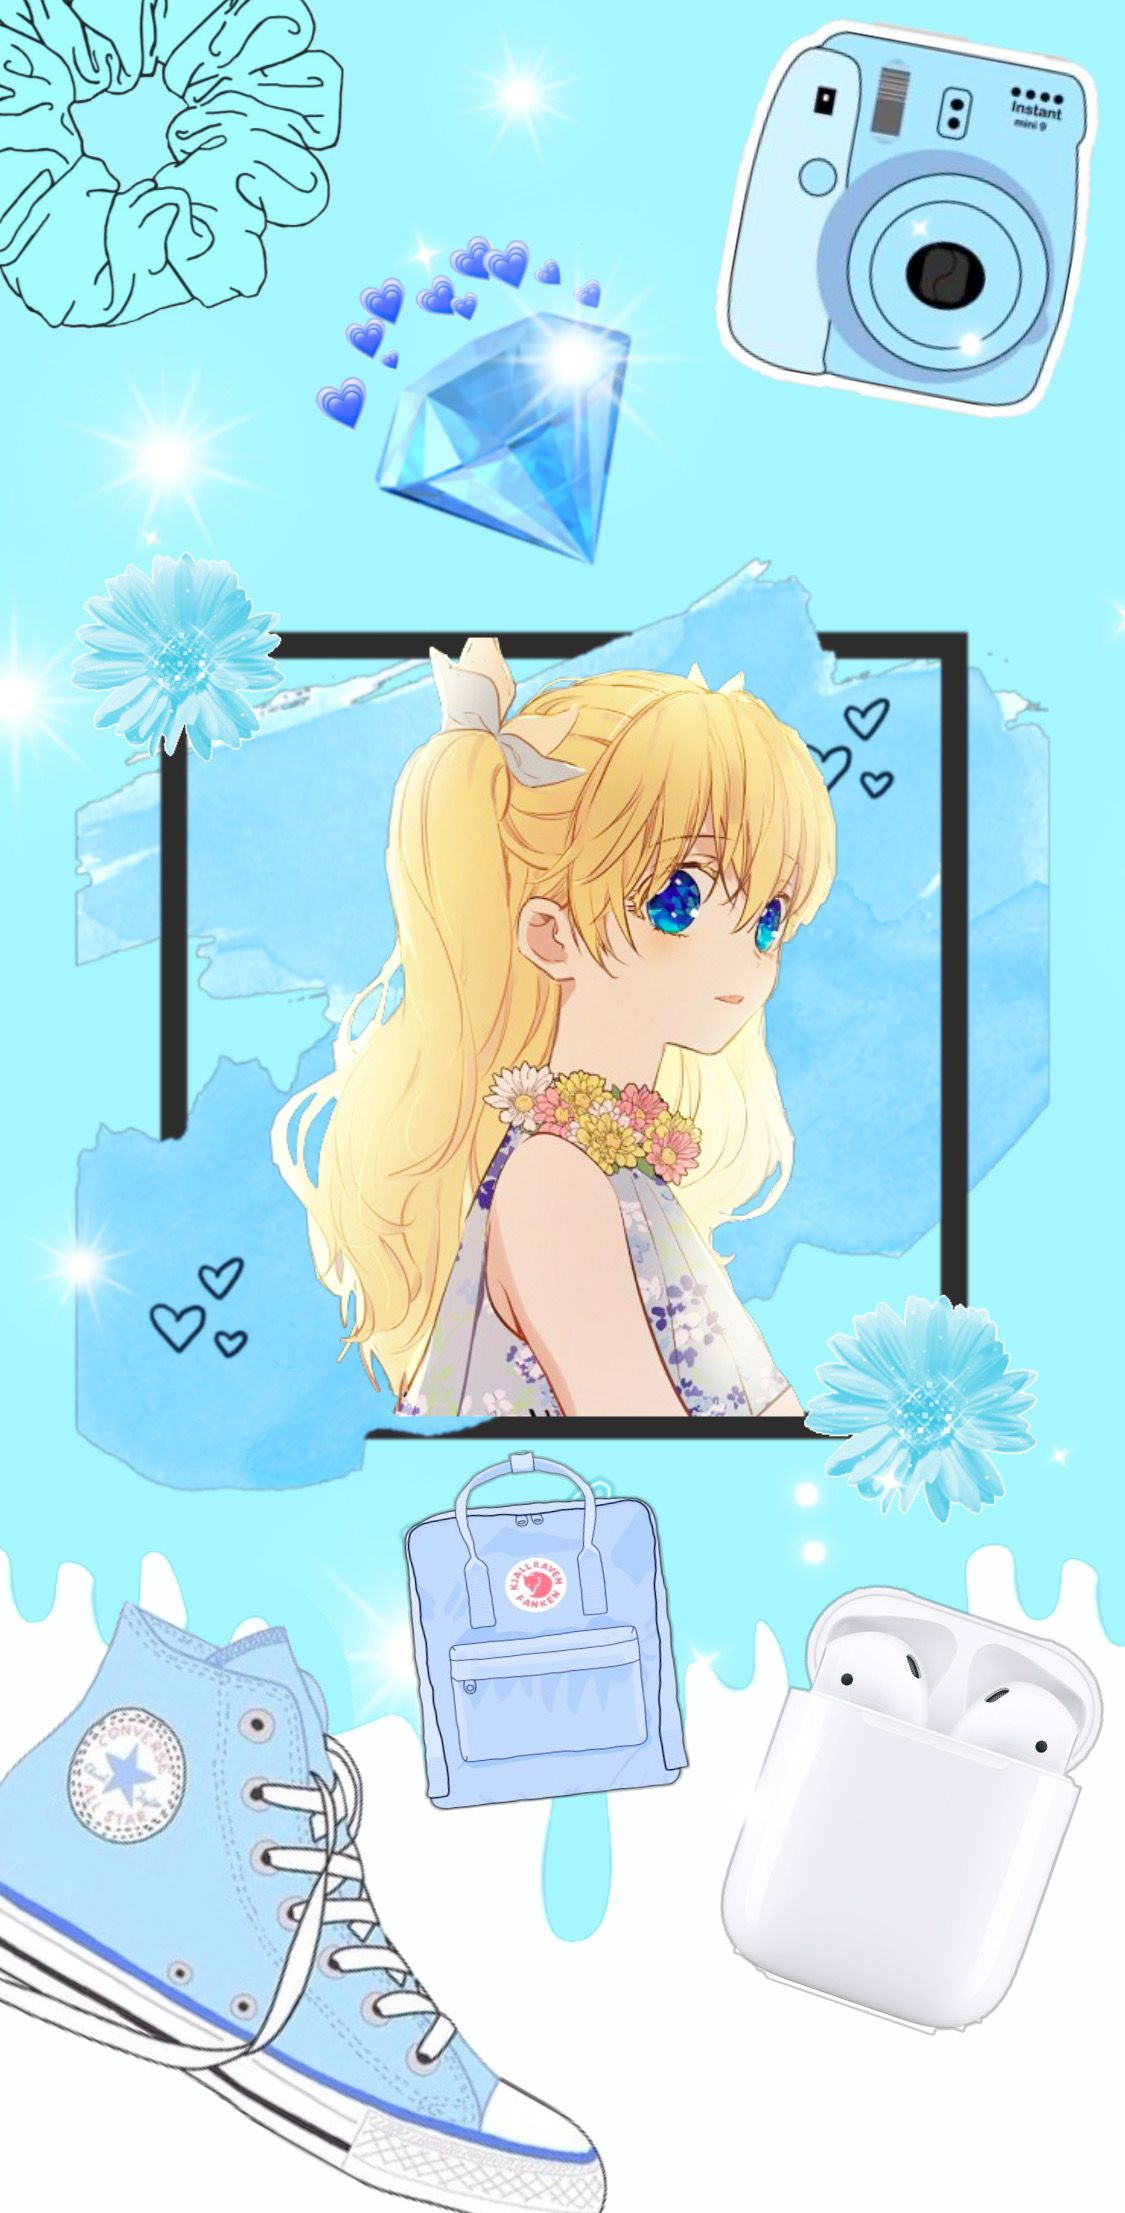 Athanasia Wallpaper In 2021 Cute Anime Wallpaper Anime Wallpaper Anime